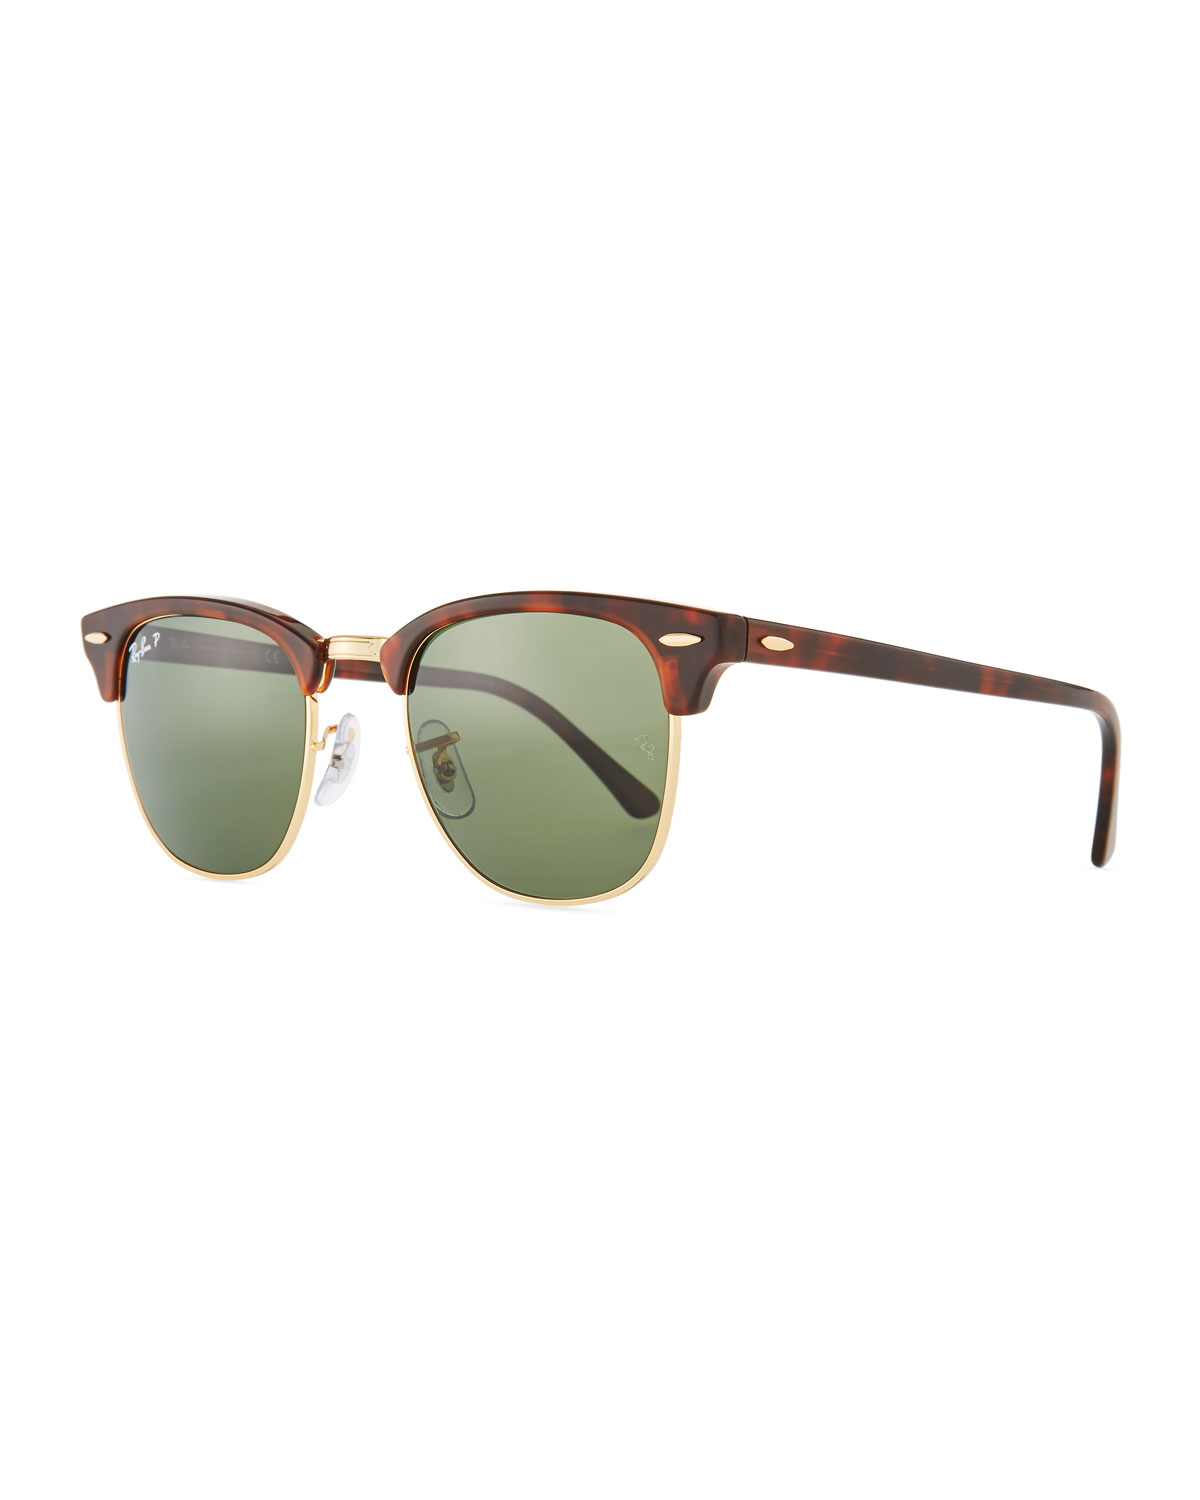 1bc1900618 Ray-Ban Men s Classic Clubmaster Polarized Half-Rim Sunglasses ...